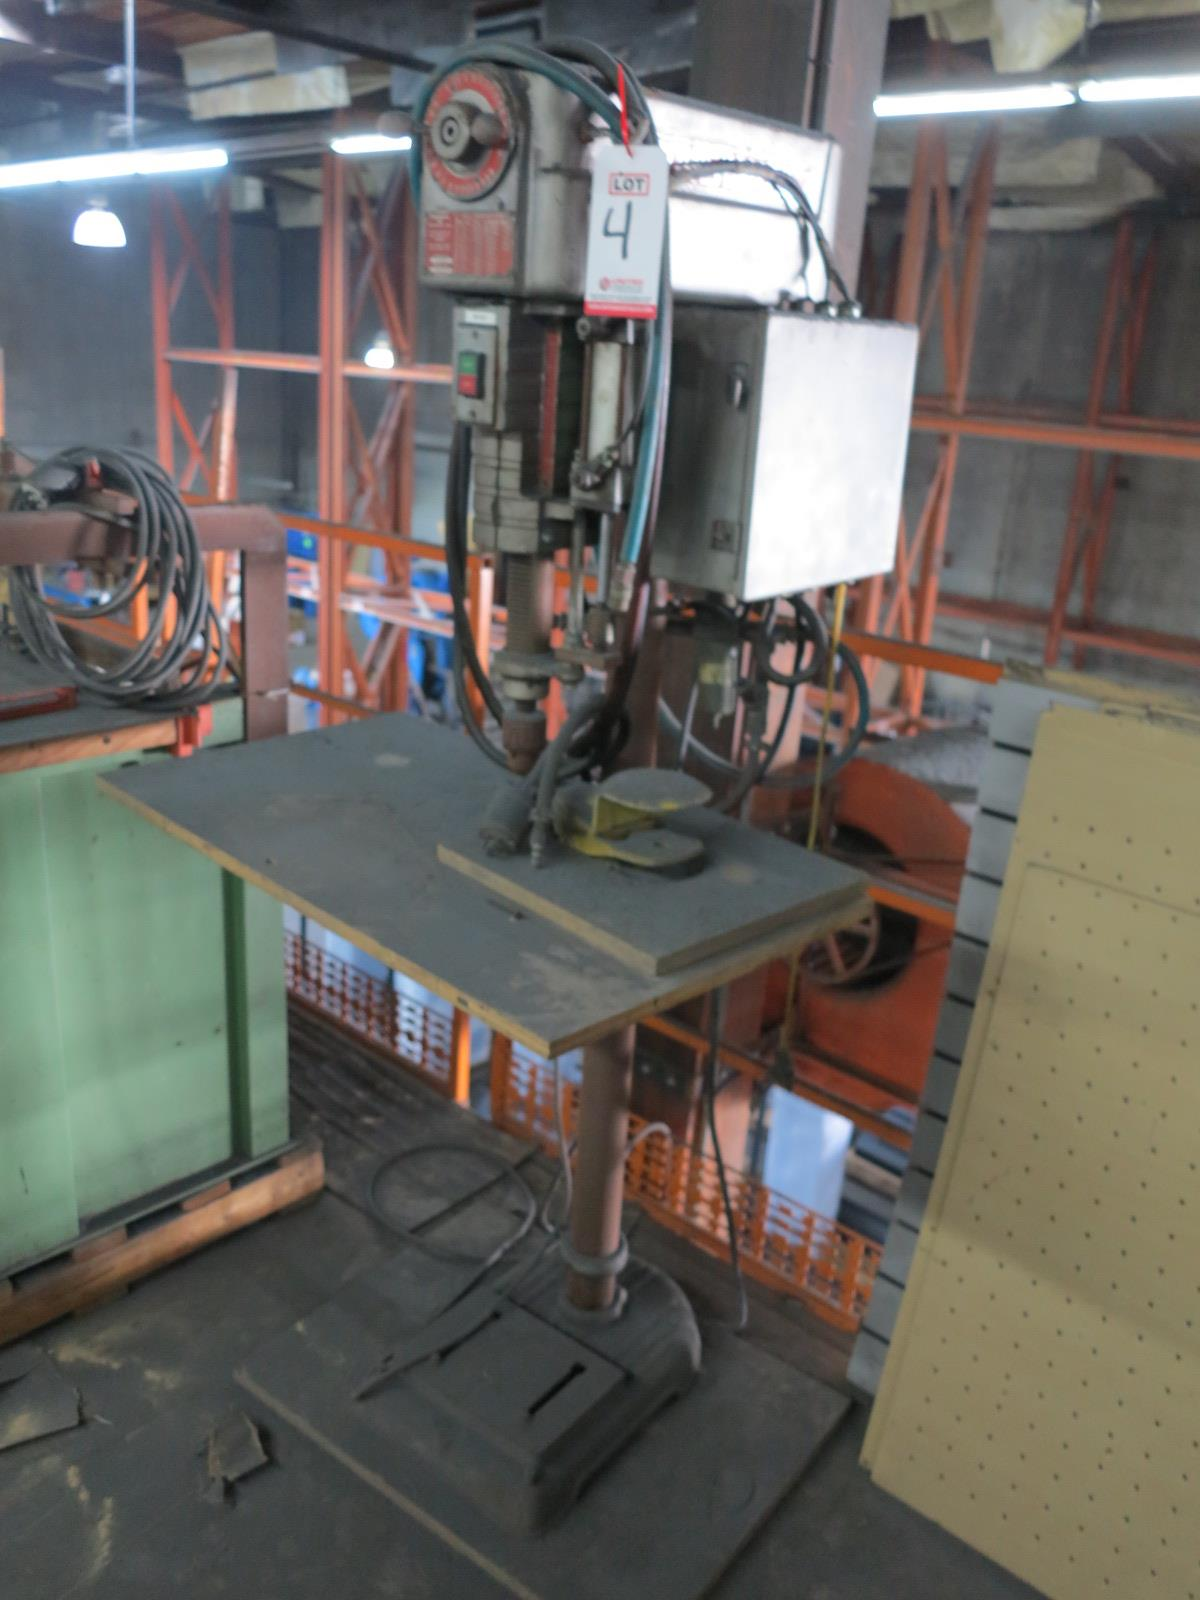 """POWERMATIC MODEL 1150 15"""" DRILL PRESS, VARIABLE SPEED, S/N 4-4359-1, OUT OF SERVICE"""